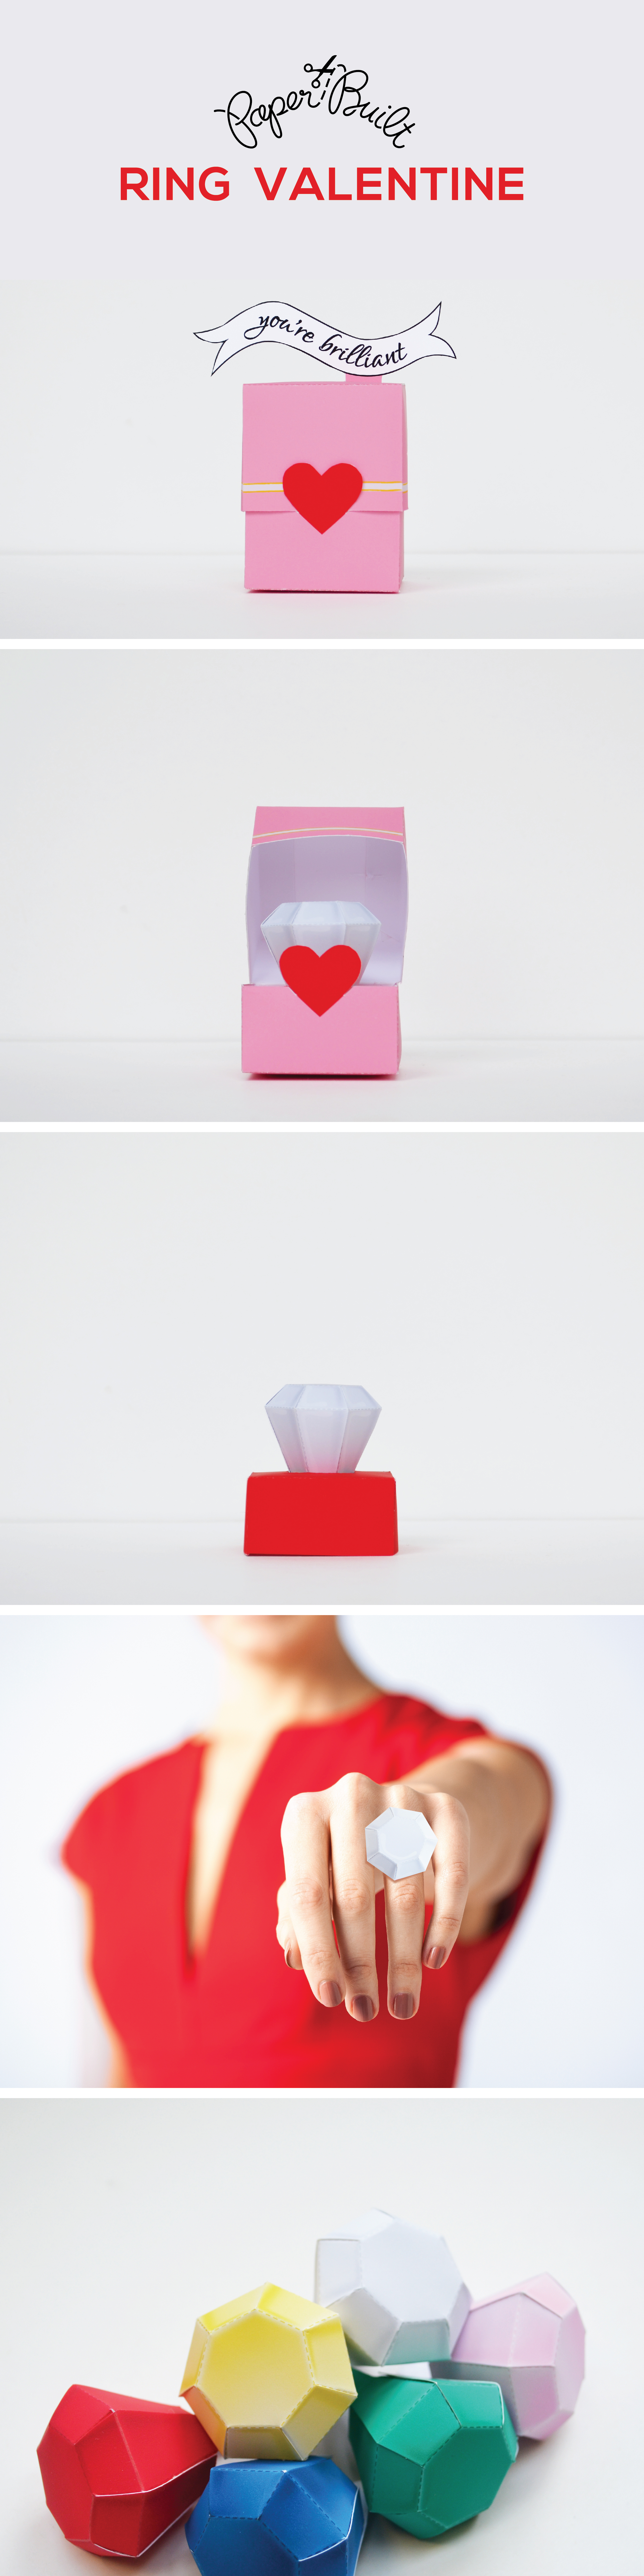 Make your own handmade paper craft Valentine's Day diamond/ gem ring by Paper Built #papercraft #handmadevalentine #valentine #papervalentine